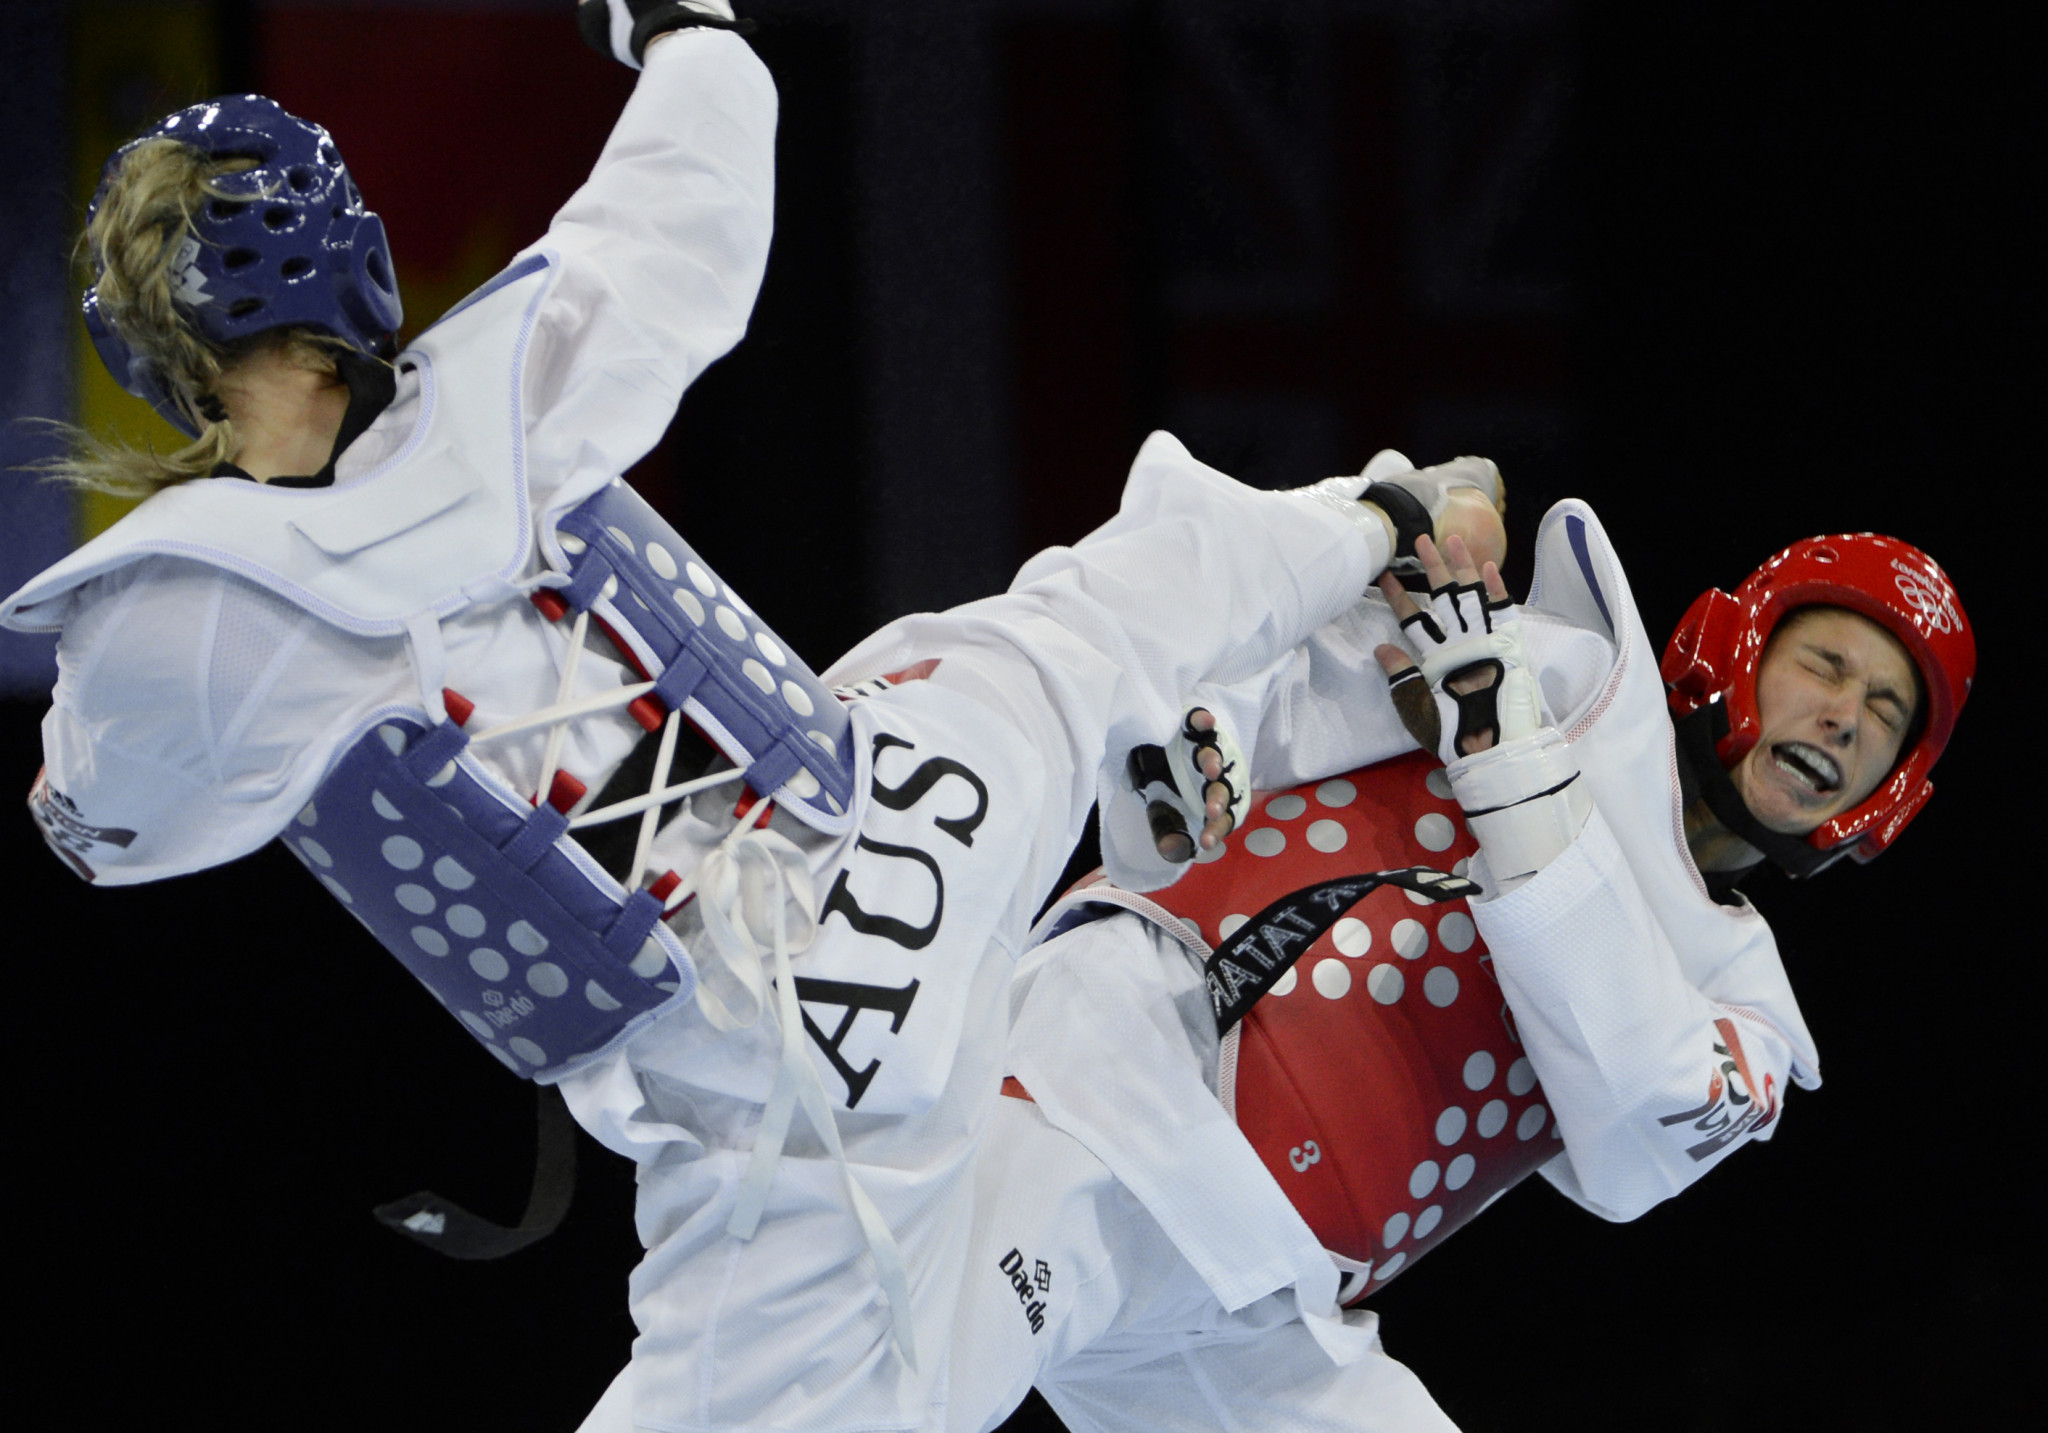 Australian Taekwondo plans three qualifiers for World Championships team